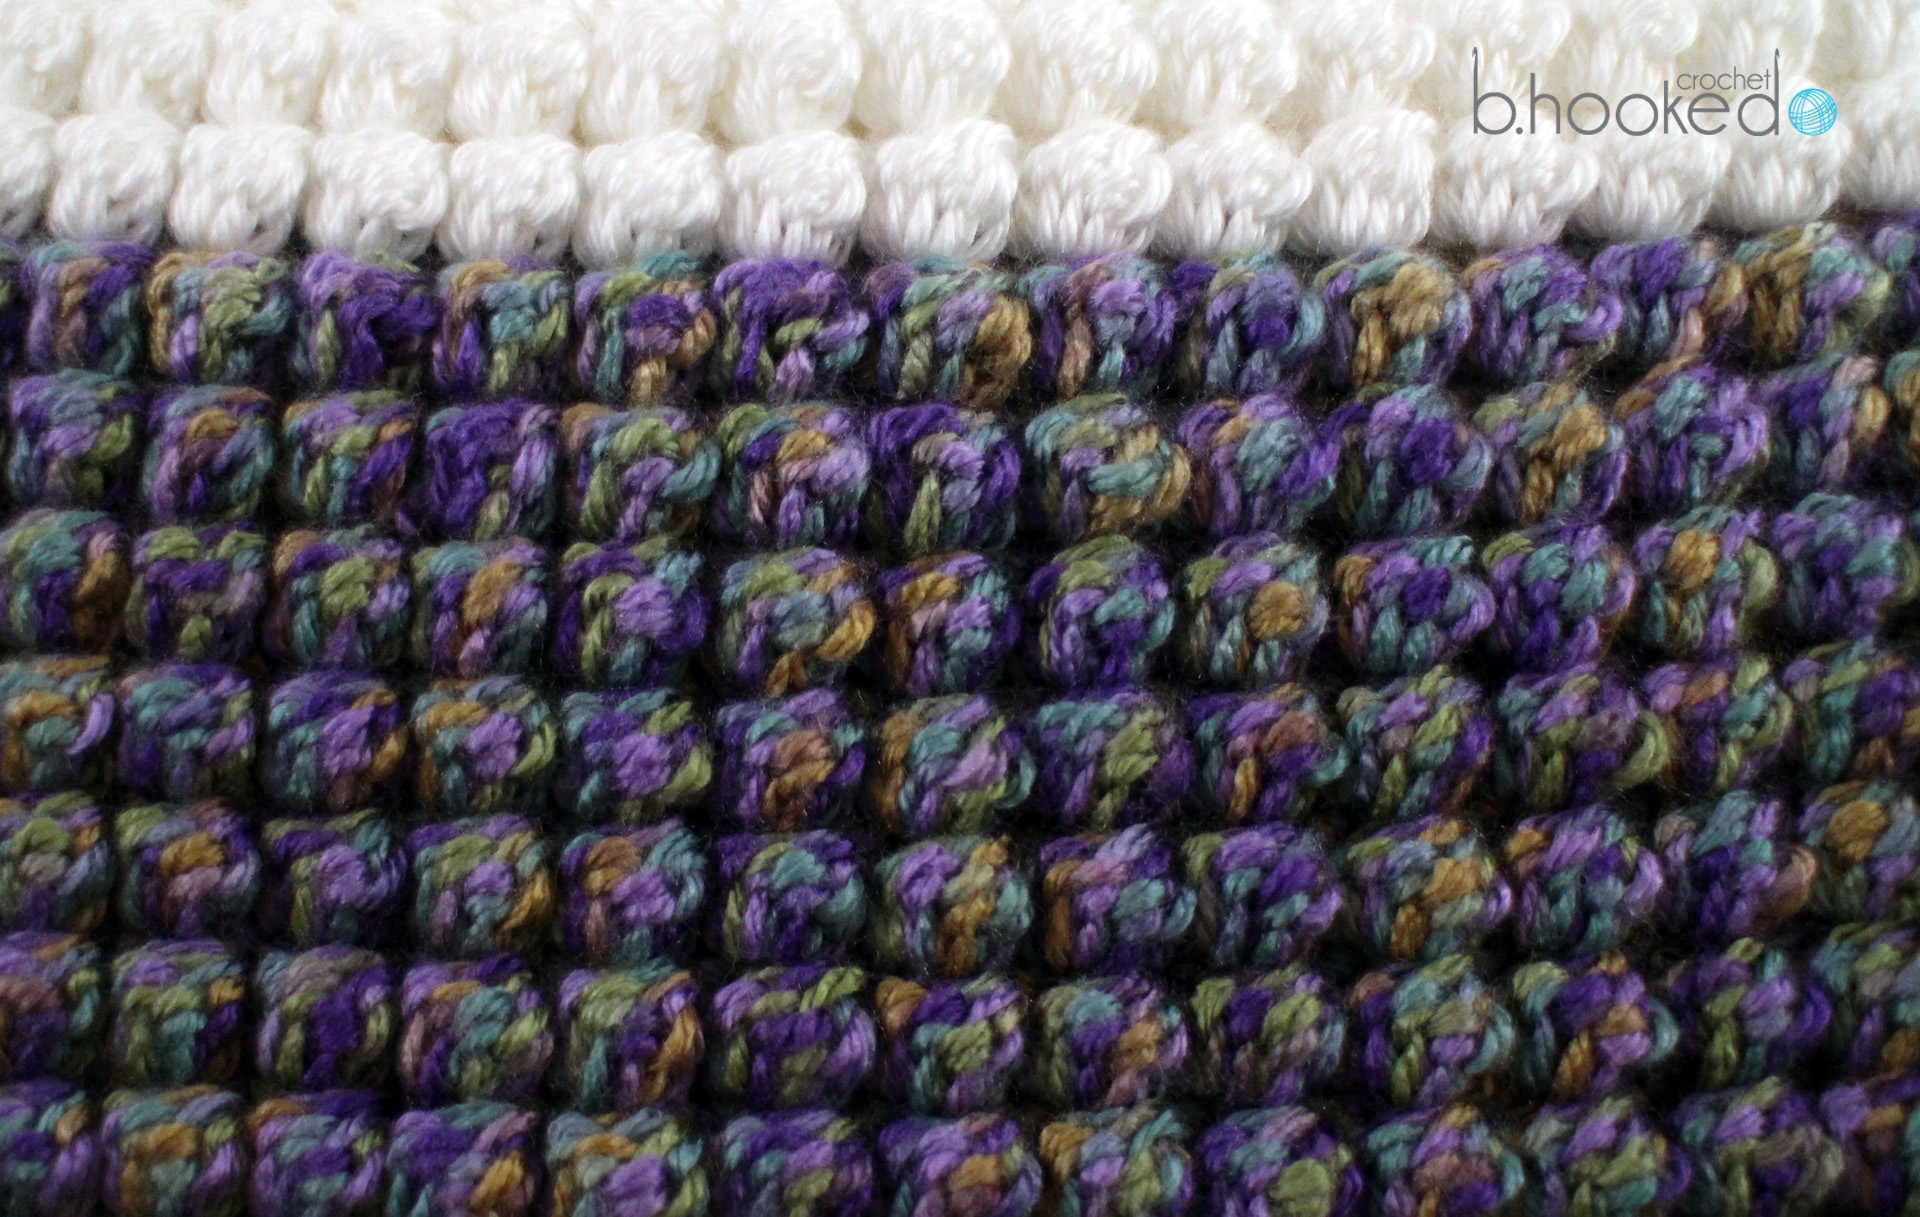 Crochet Bobble Stitch - B.hooked Crochet